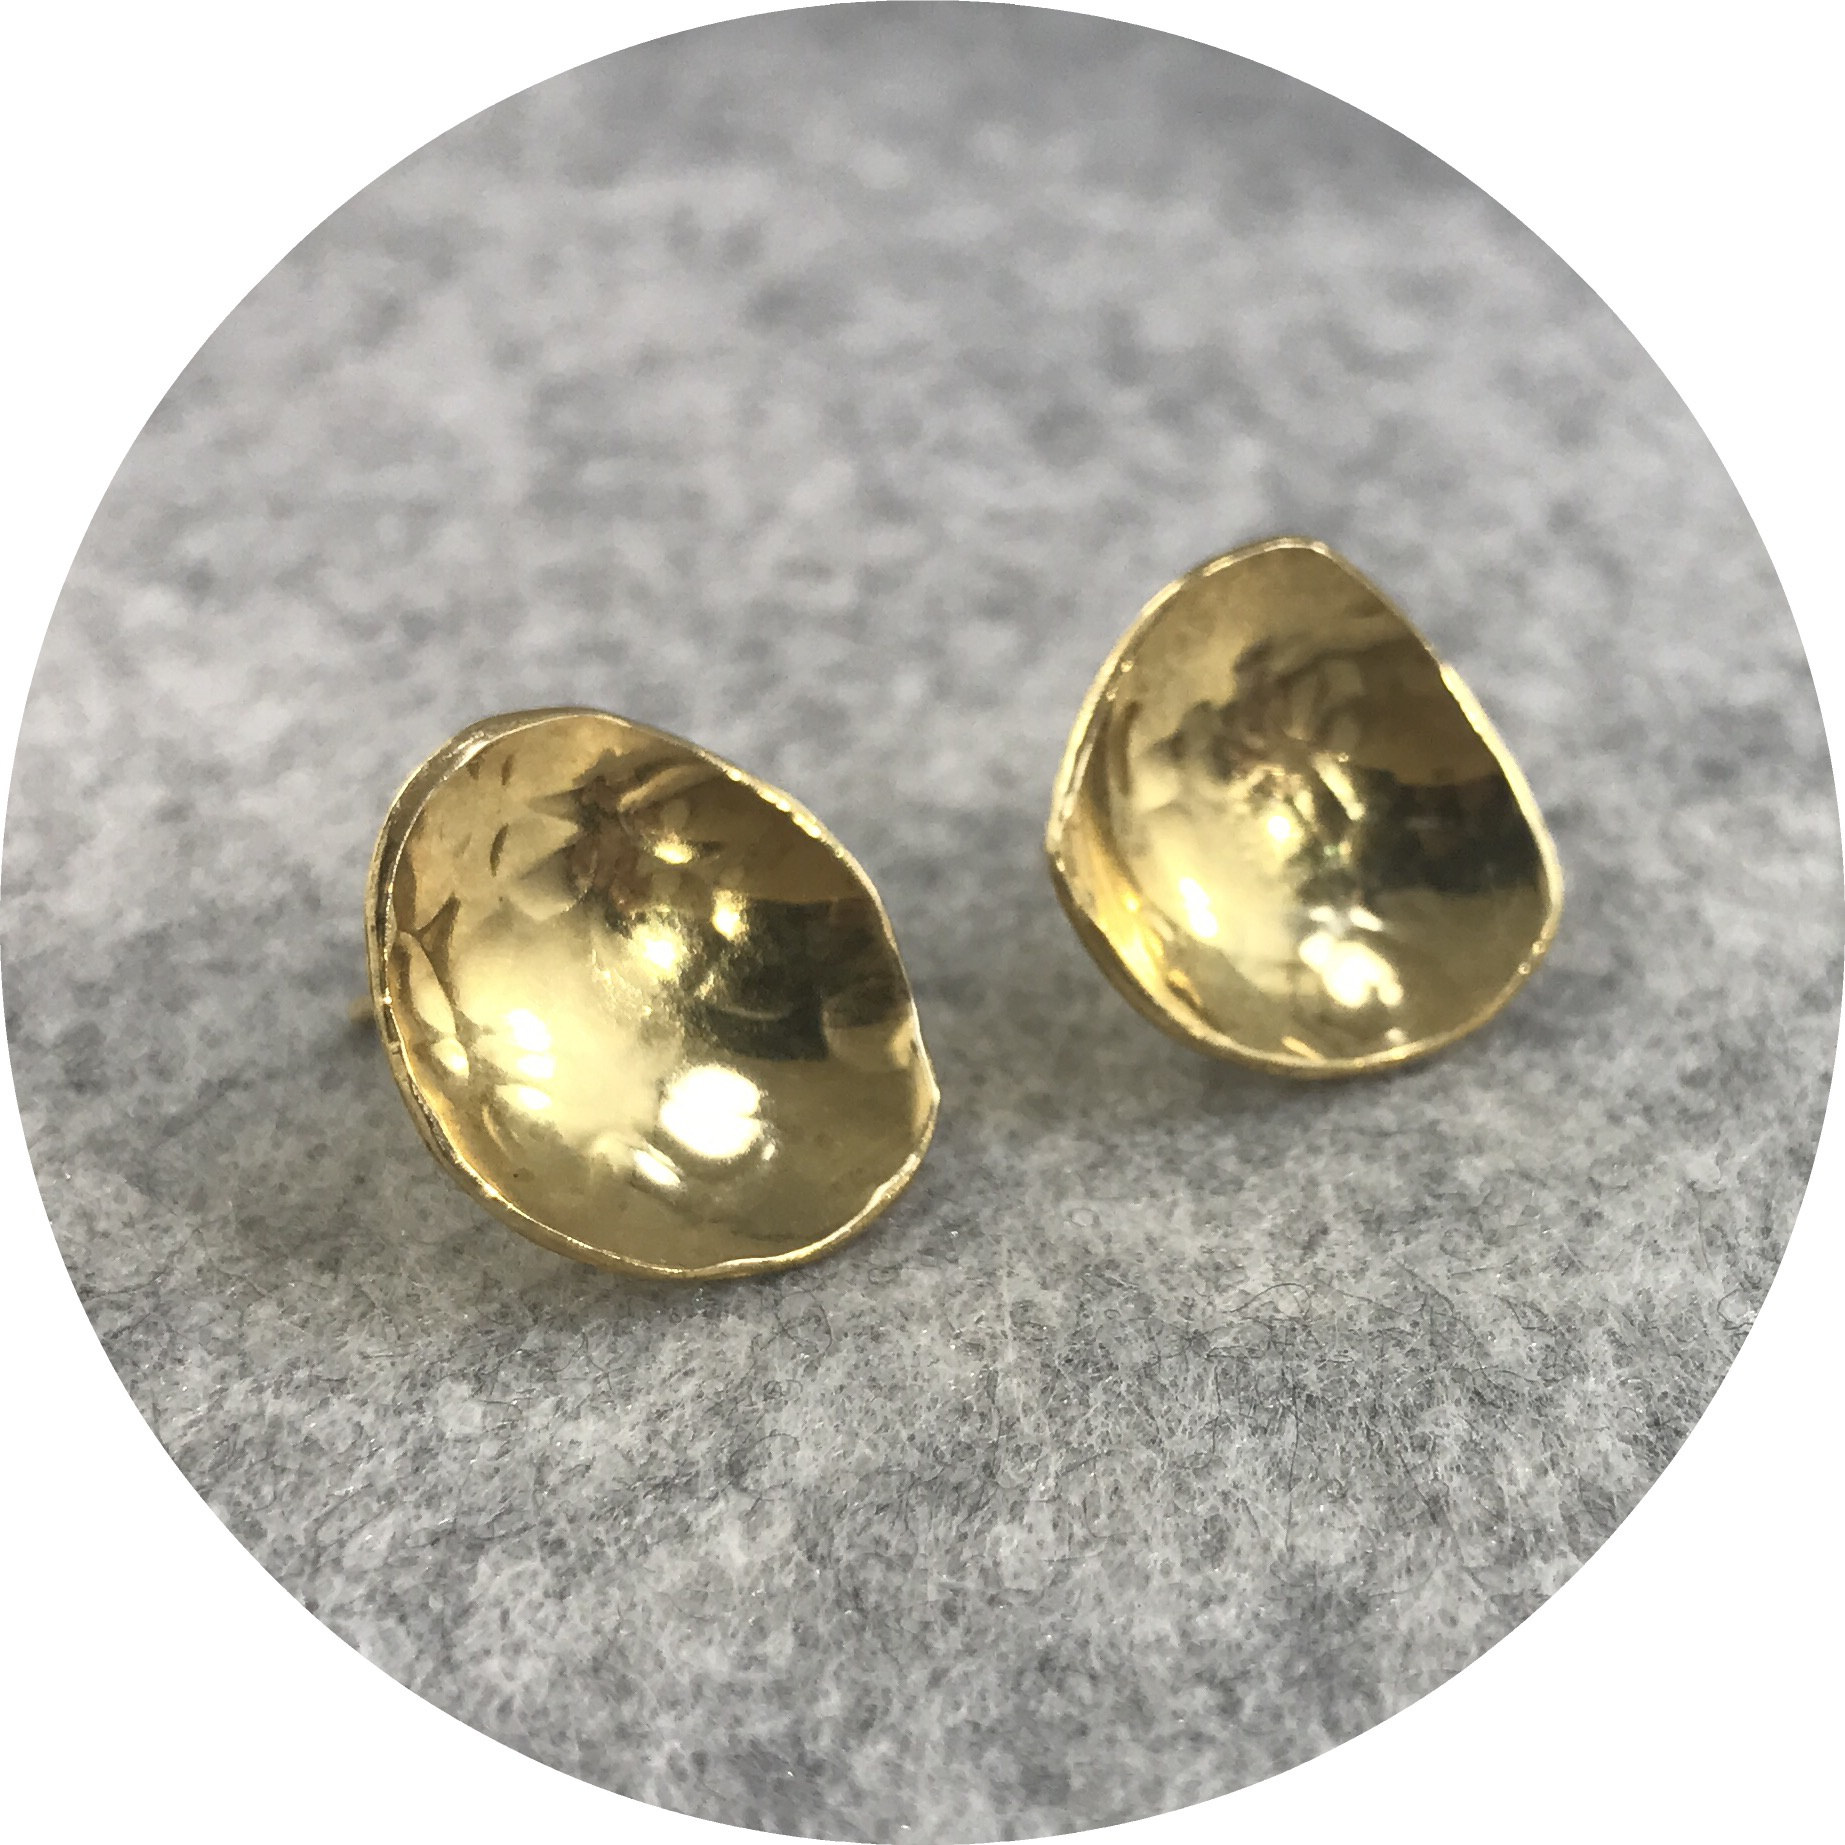 Elodie Darwish - Dish Earrings in Gold Plated Sterling Silver medium